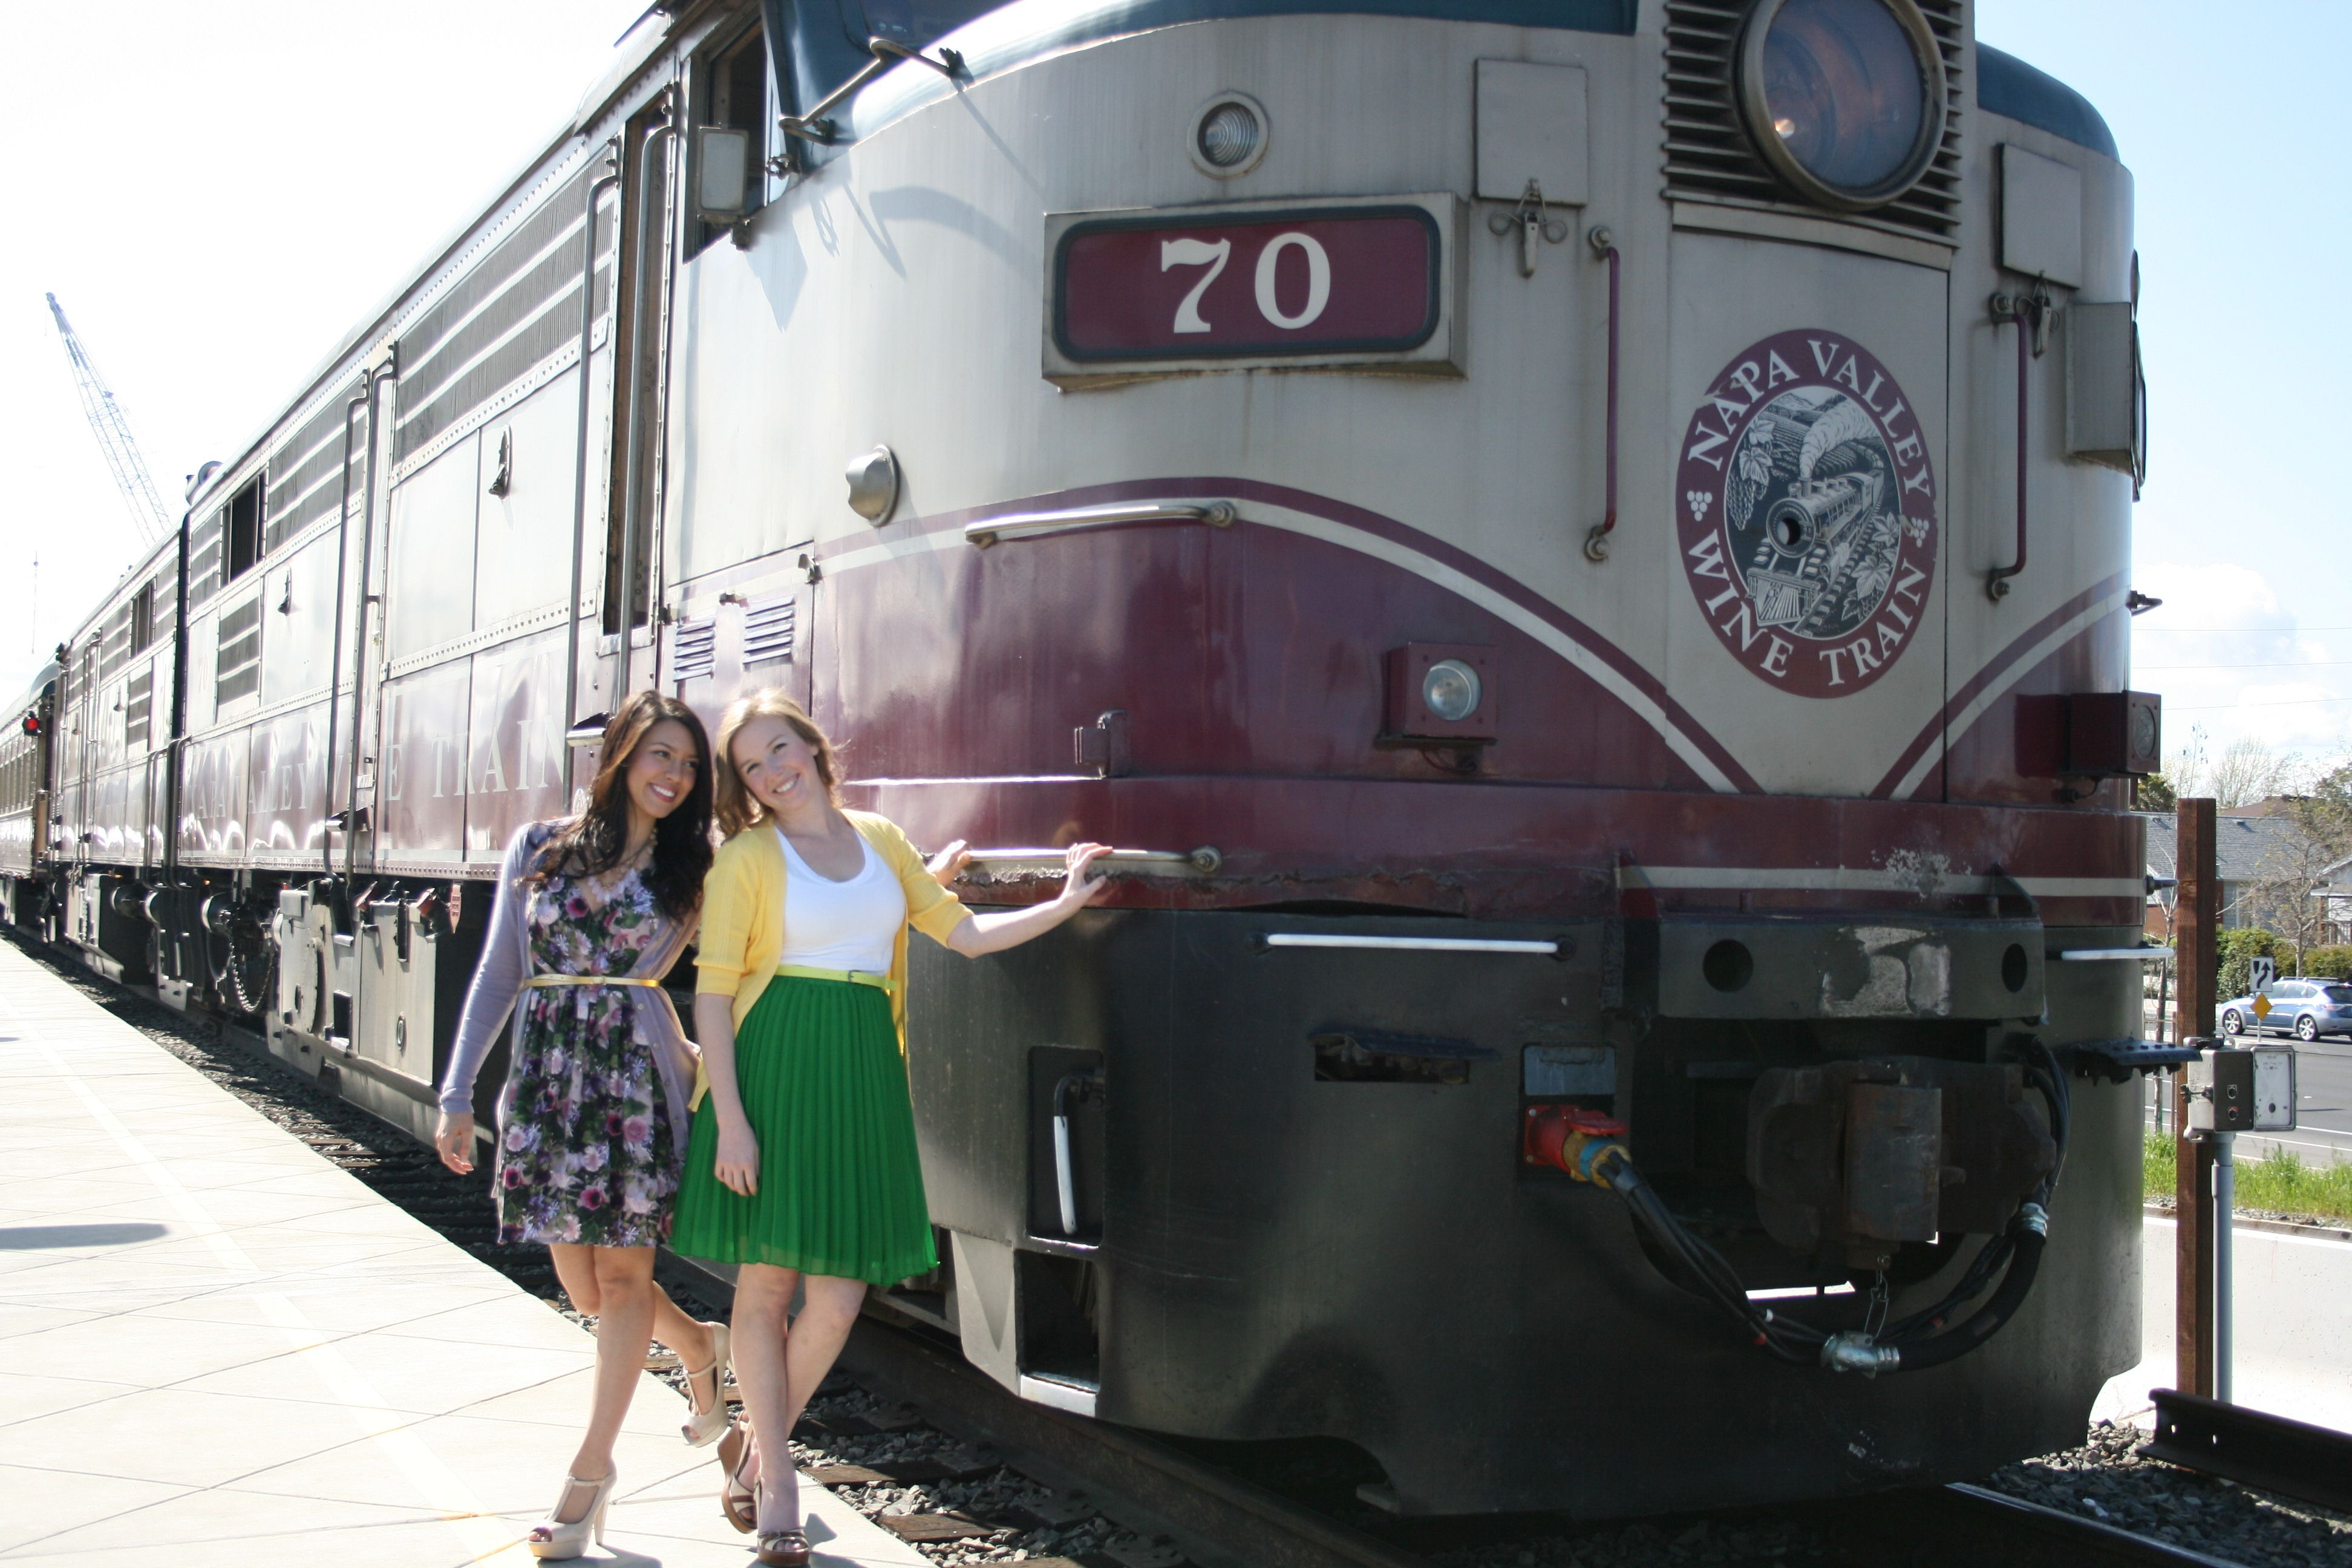 Wondering What To Wear On Your Upcoming Trip To Napa Check Out Our Newest Monthly Blog Napa Casu Napa Valley Wine Train Napa Valley Wine Tours Wine Train